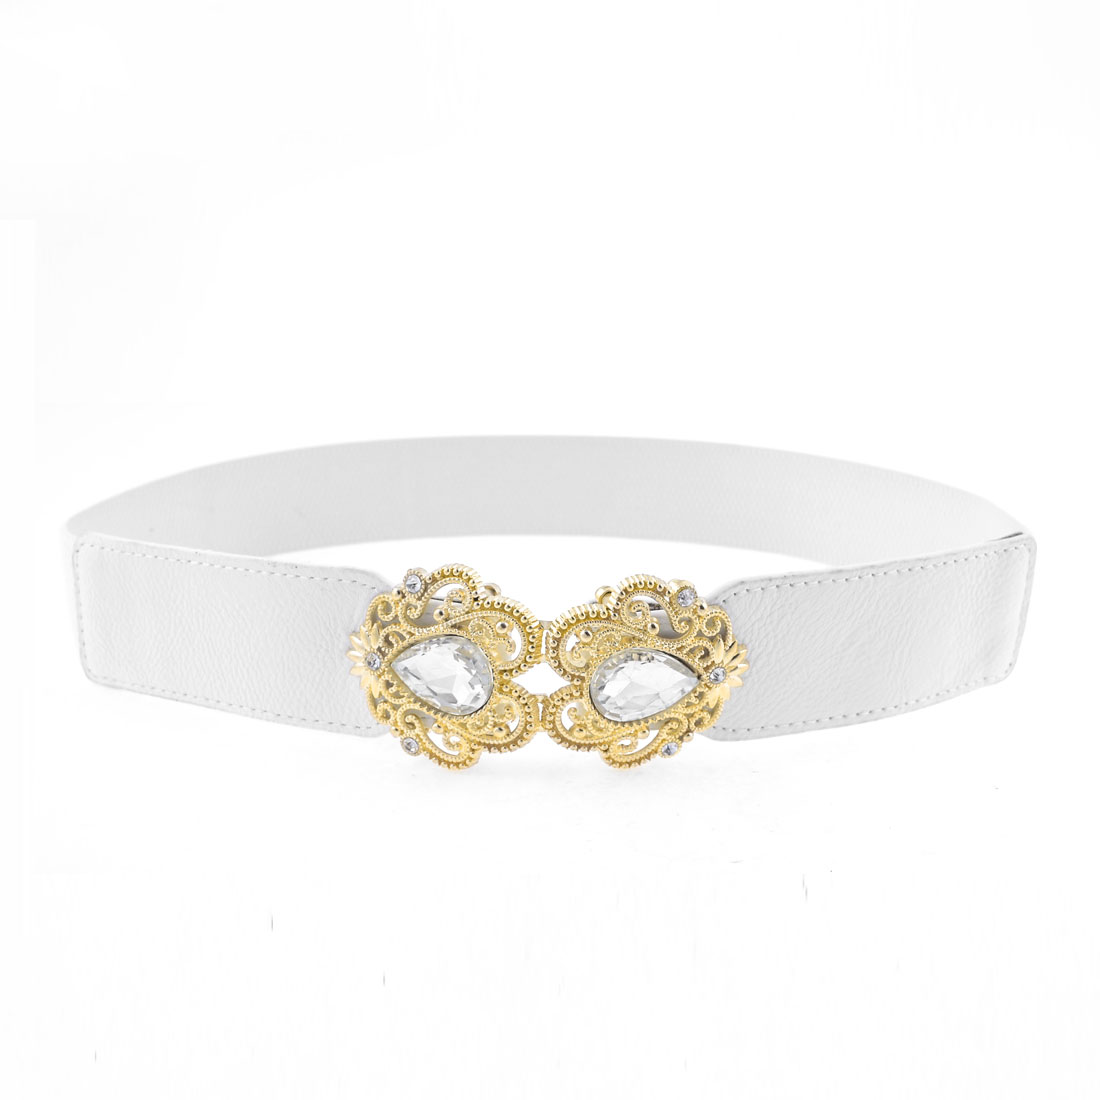 Woman Litchi Faux Leather Plastic Crystal Decor Flower Buckle Cinch Belt White